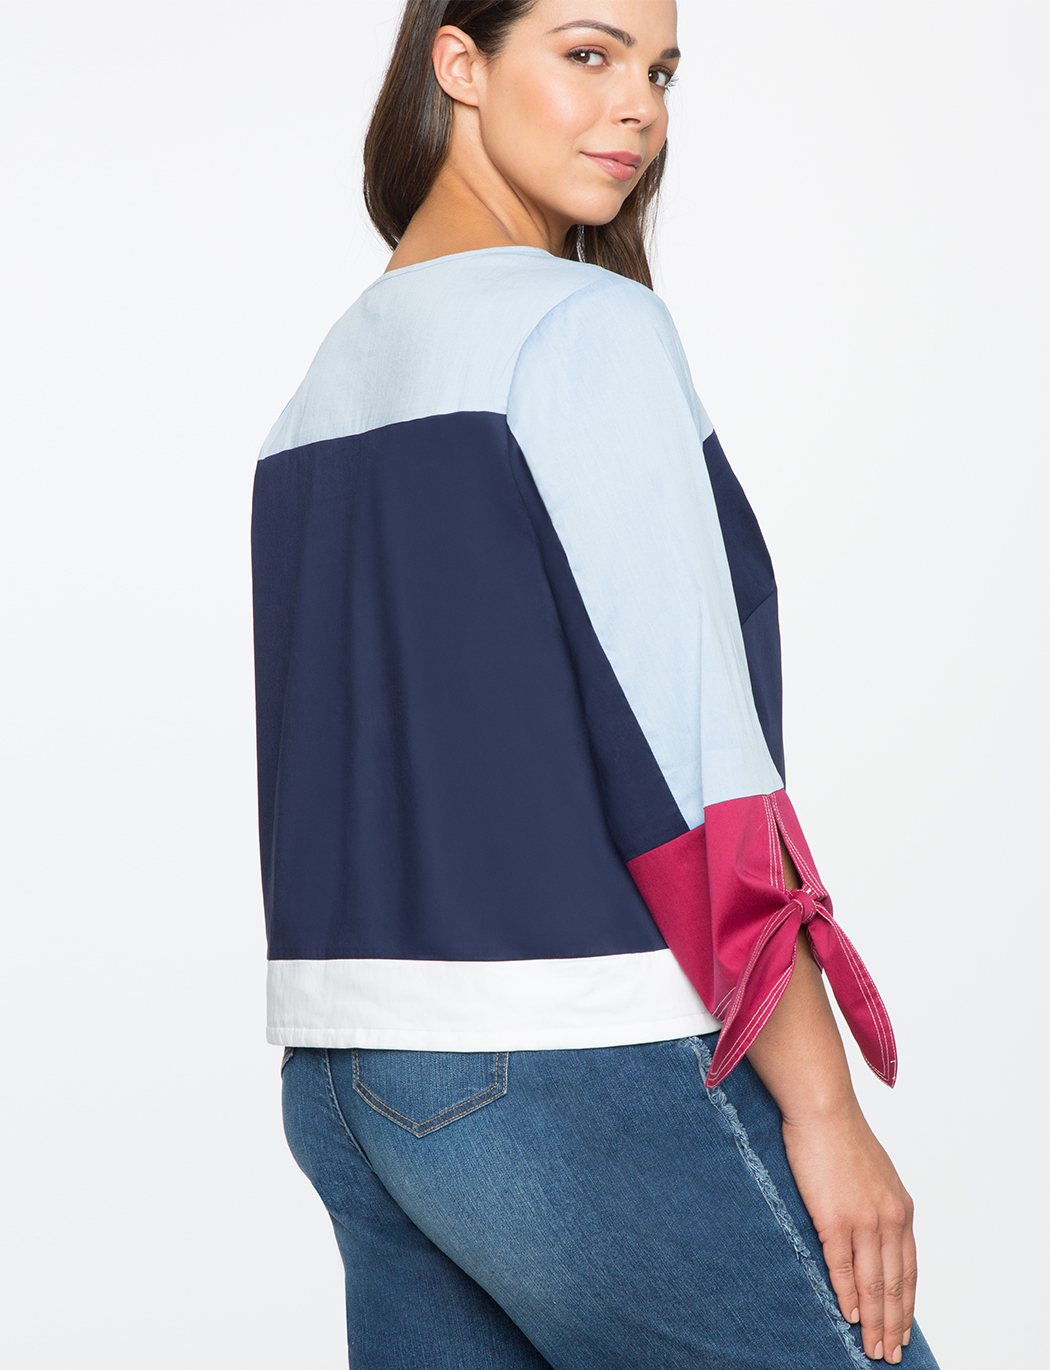 Colorblocked Sporty Crop Top